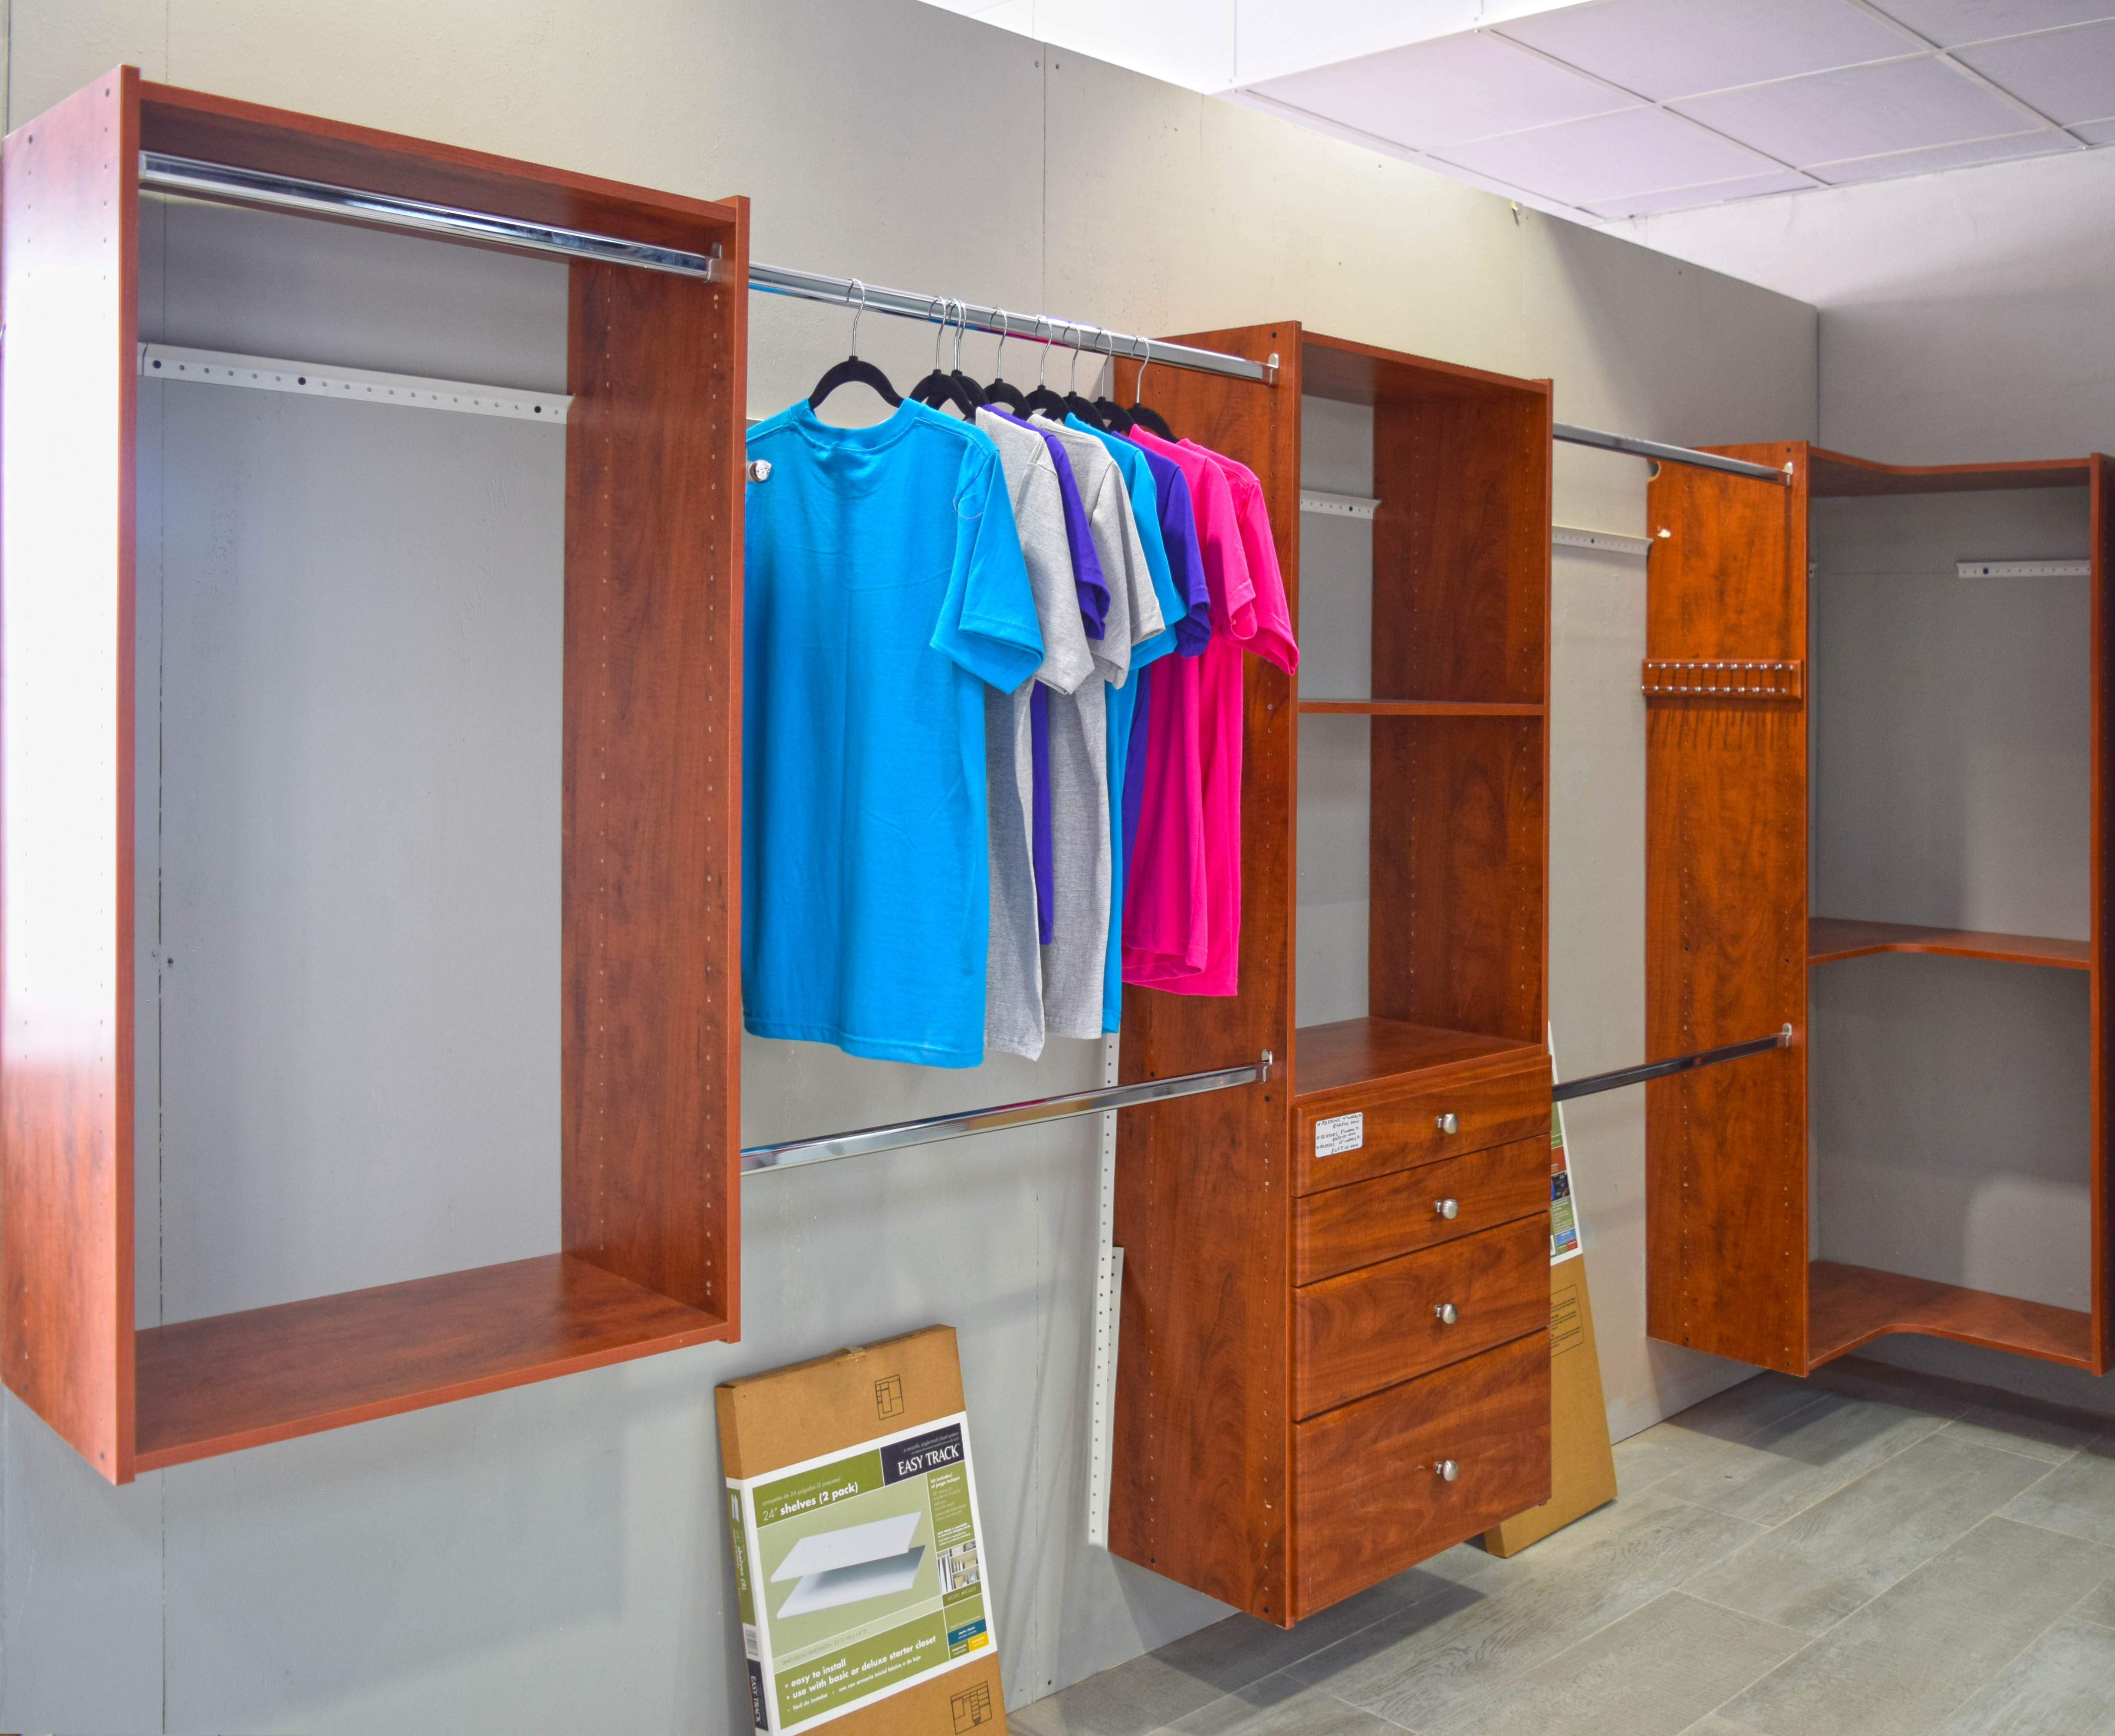 cm ikea black racks closet pin use closets indoor rack outdoor and turbo for movable clothes in both suitable